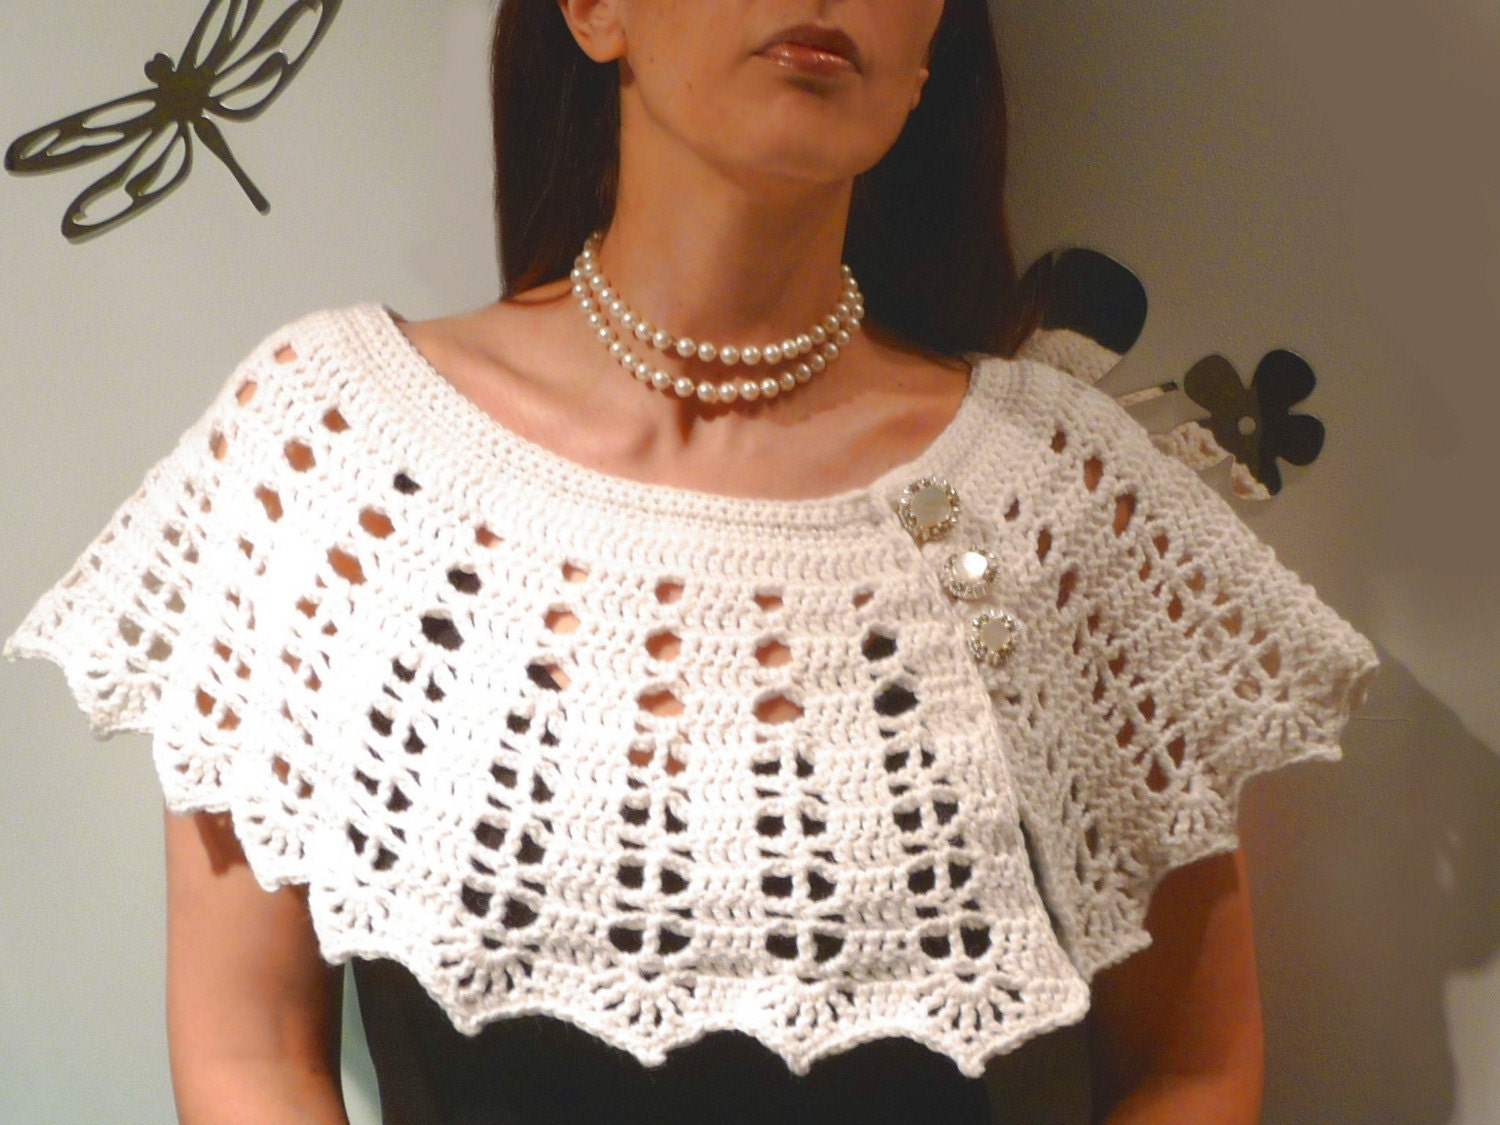 MILKY WAY - capelet/shoulderette